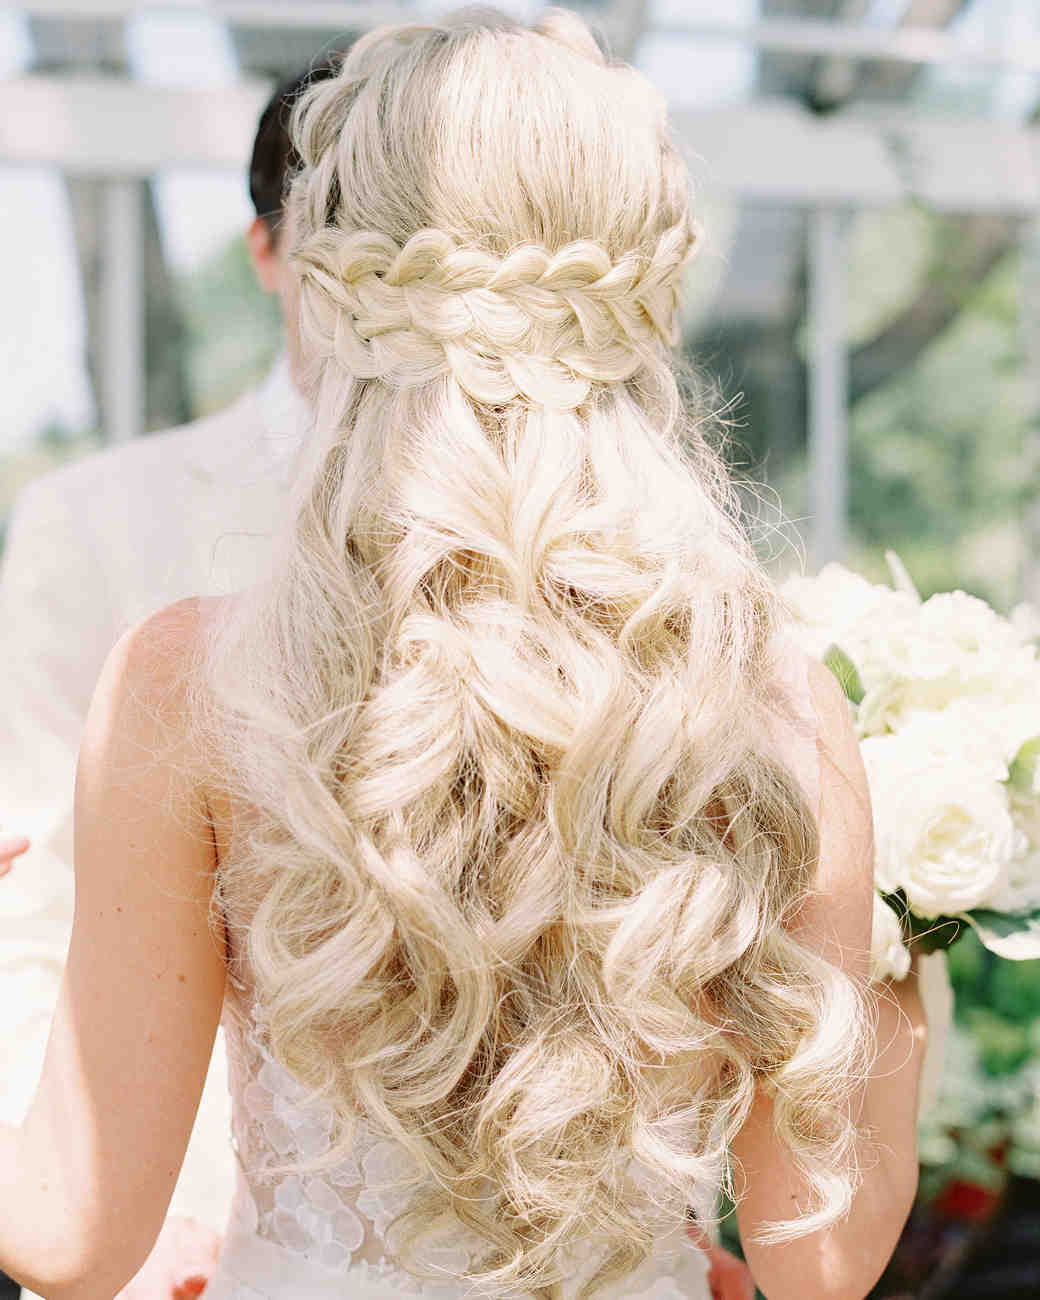 Wedding New Hair Style: 28 Half-Up, Half-Down Wedding Hairstyles We Love